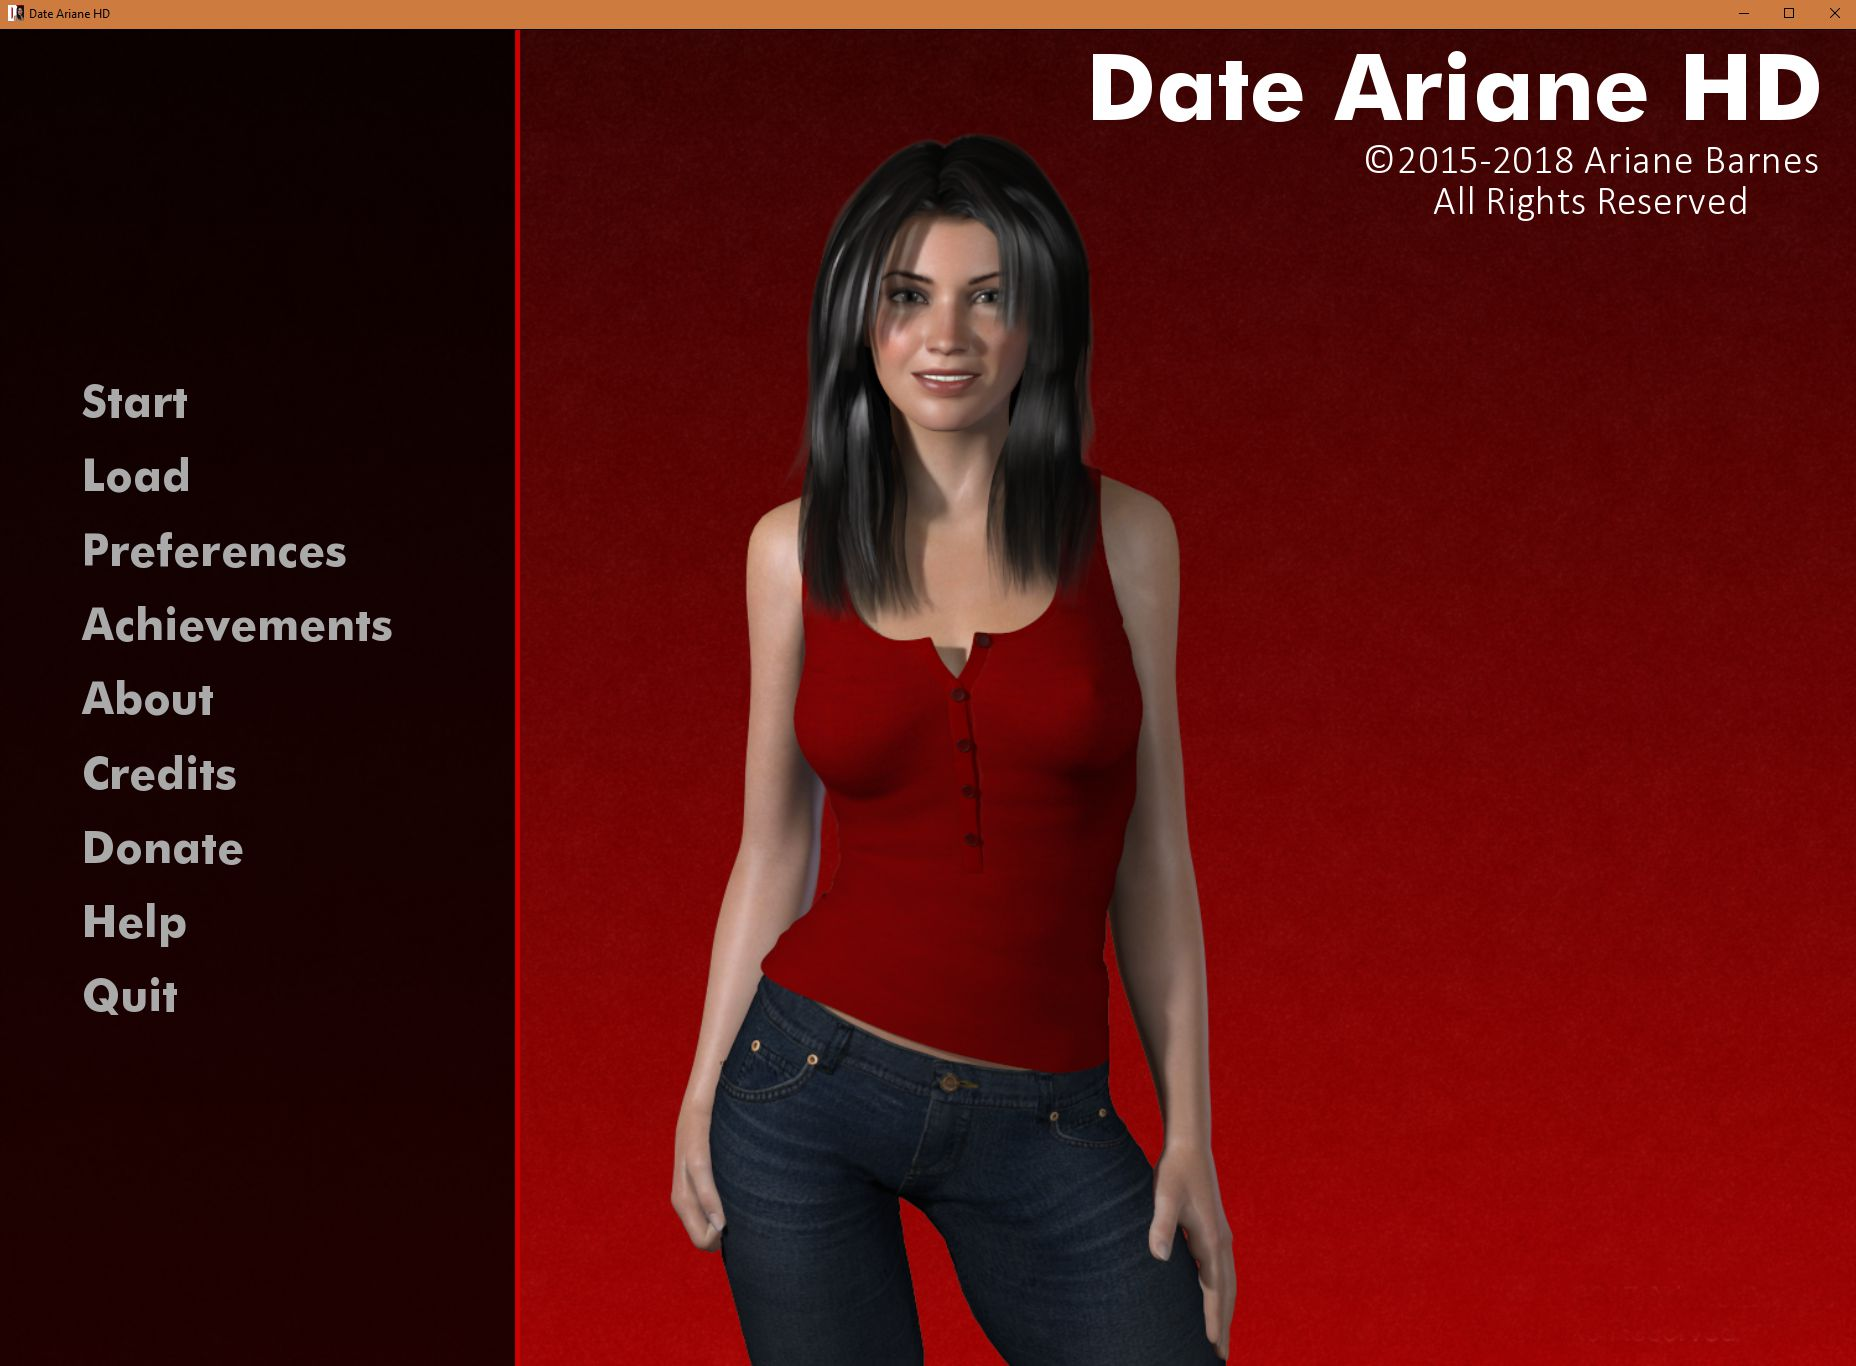 dating simulator date ariane beaten 4 years date